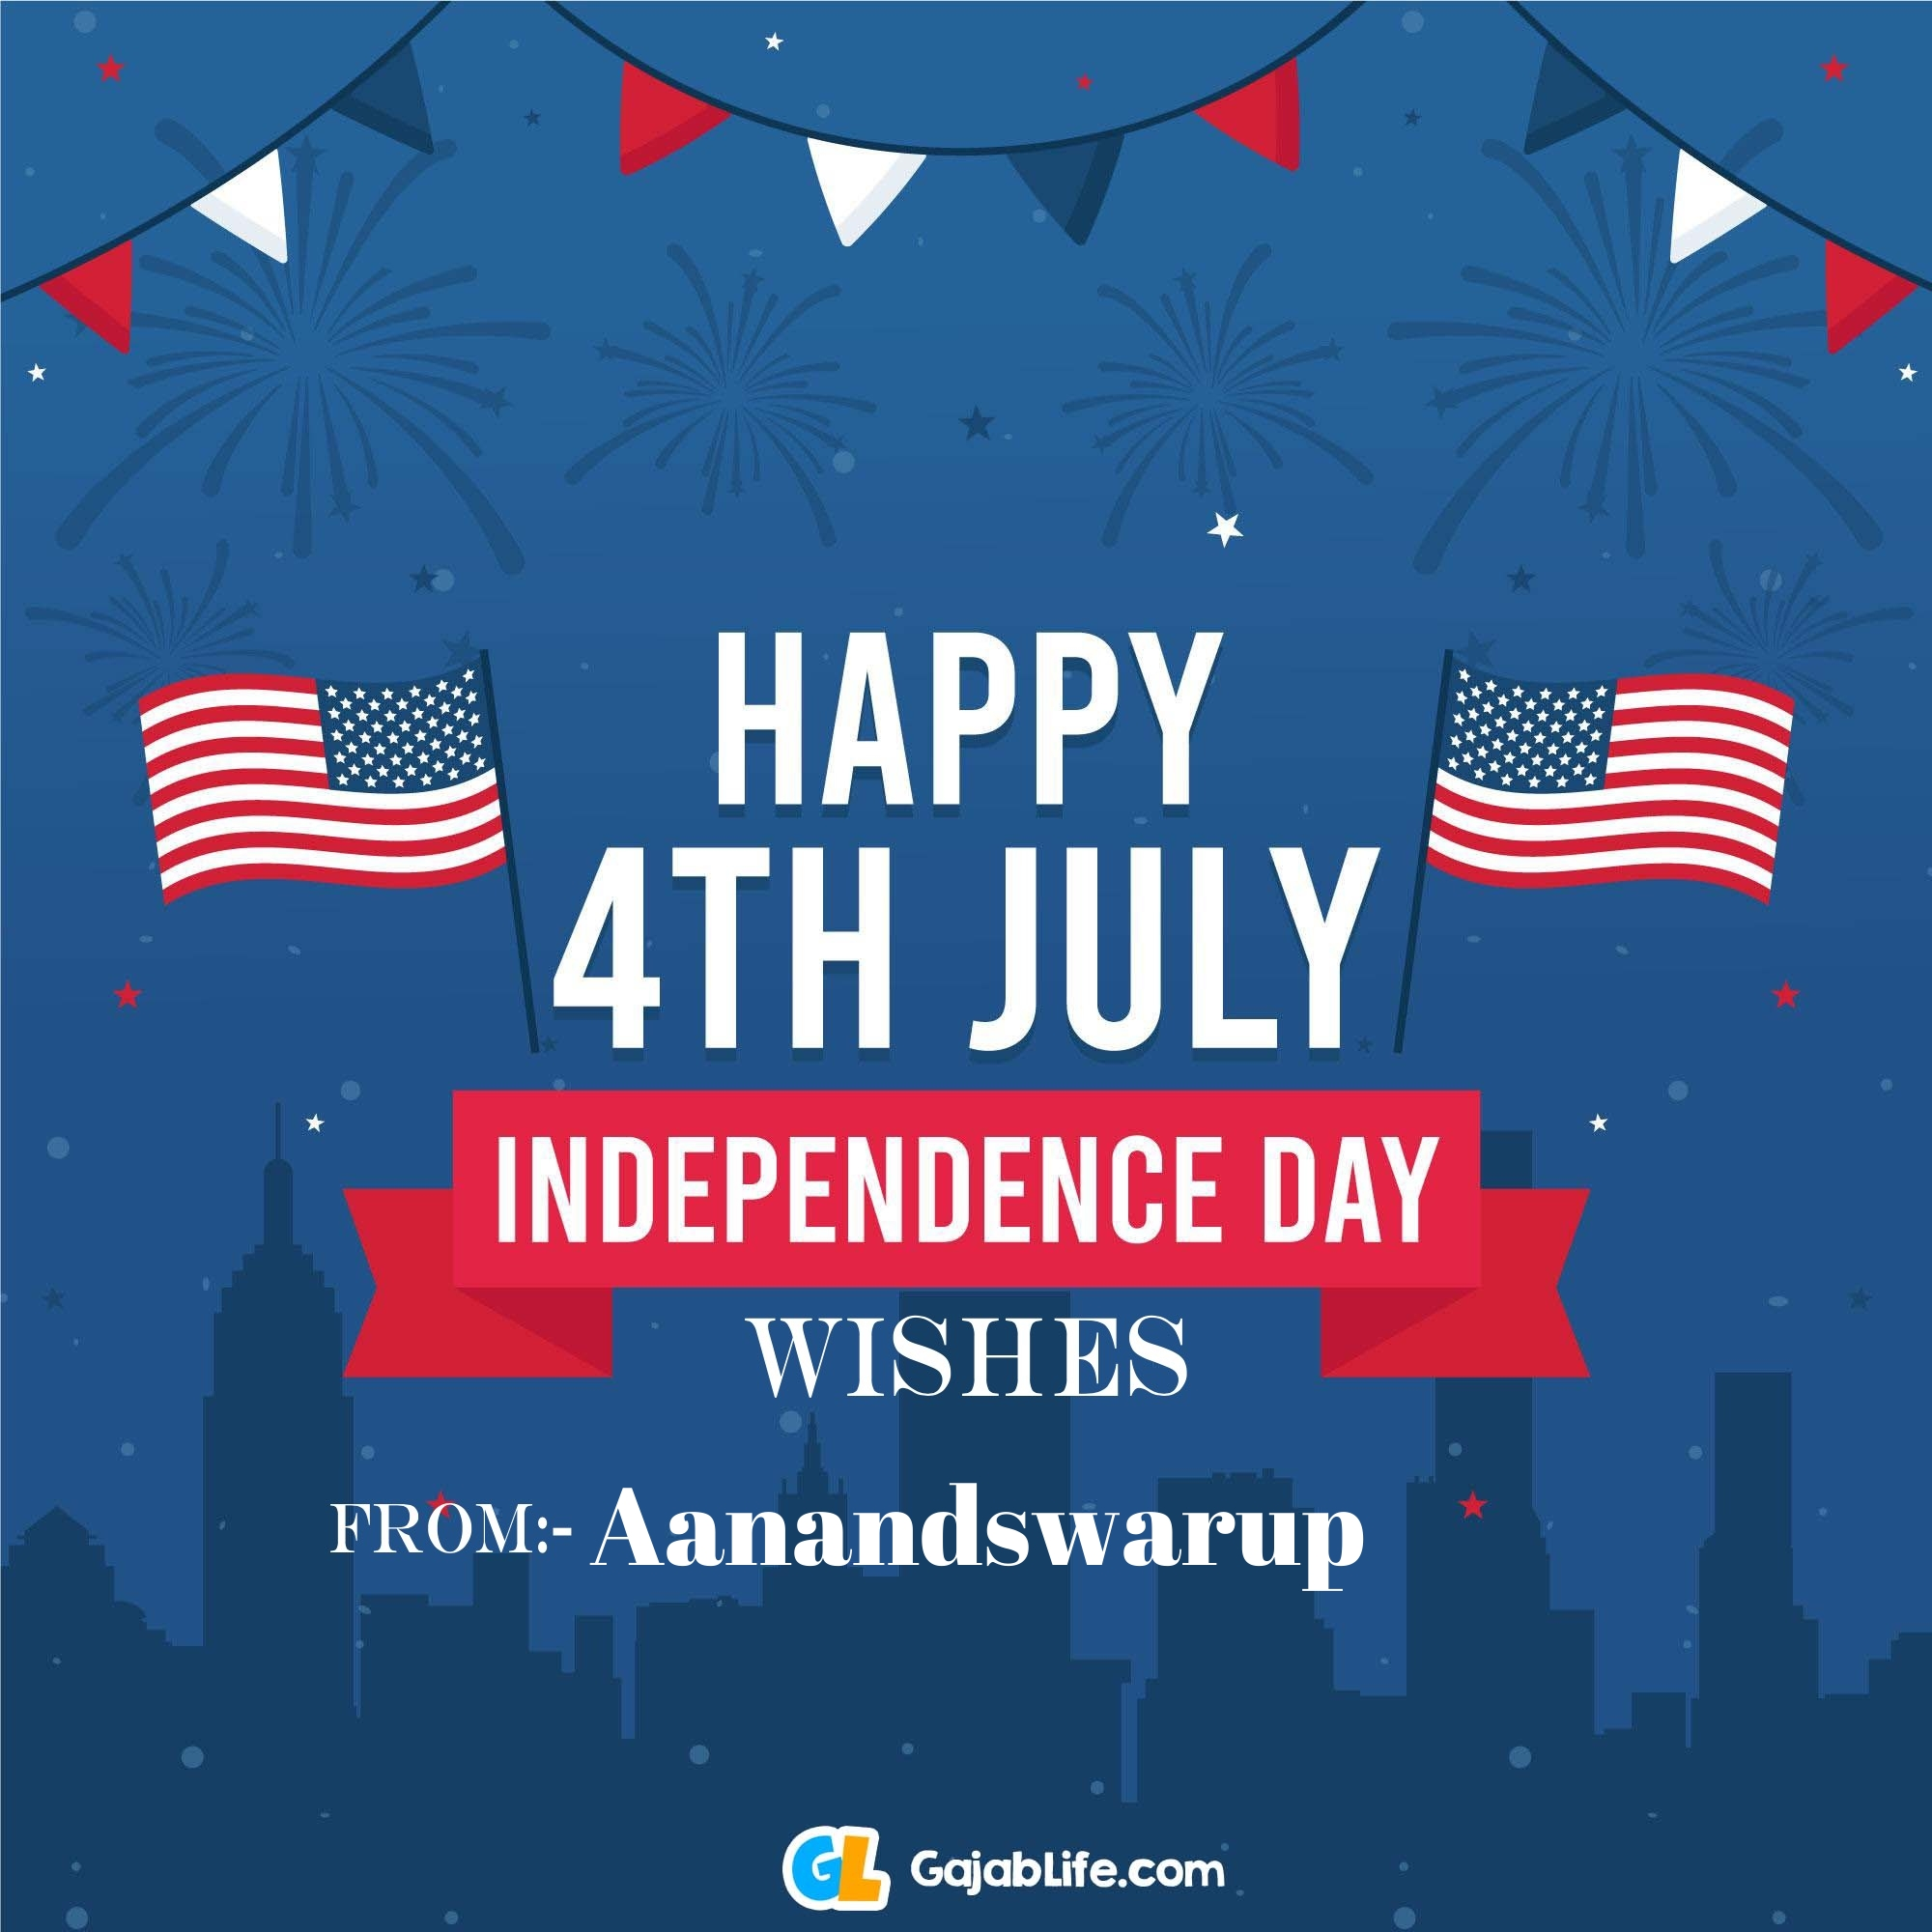 Aanandswarup happy independence day united states of america images